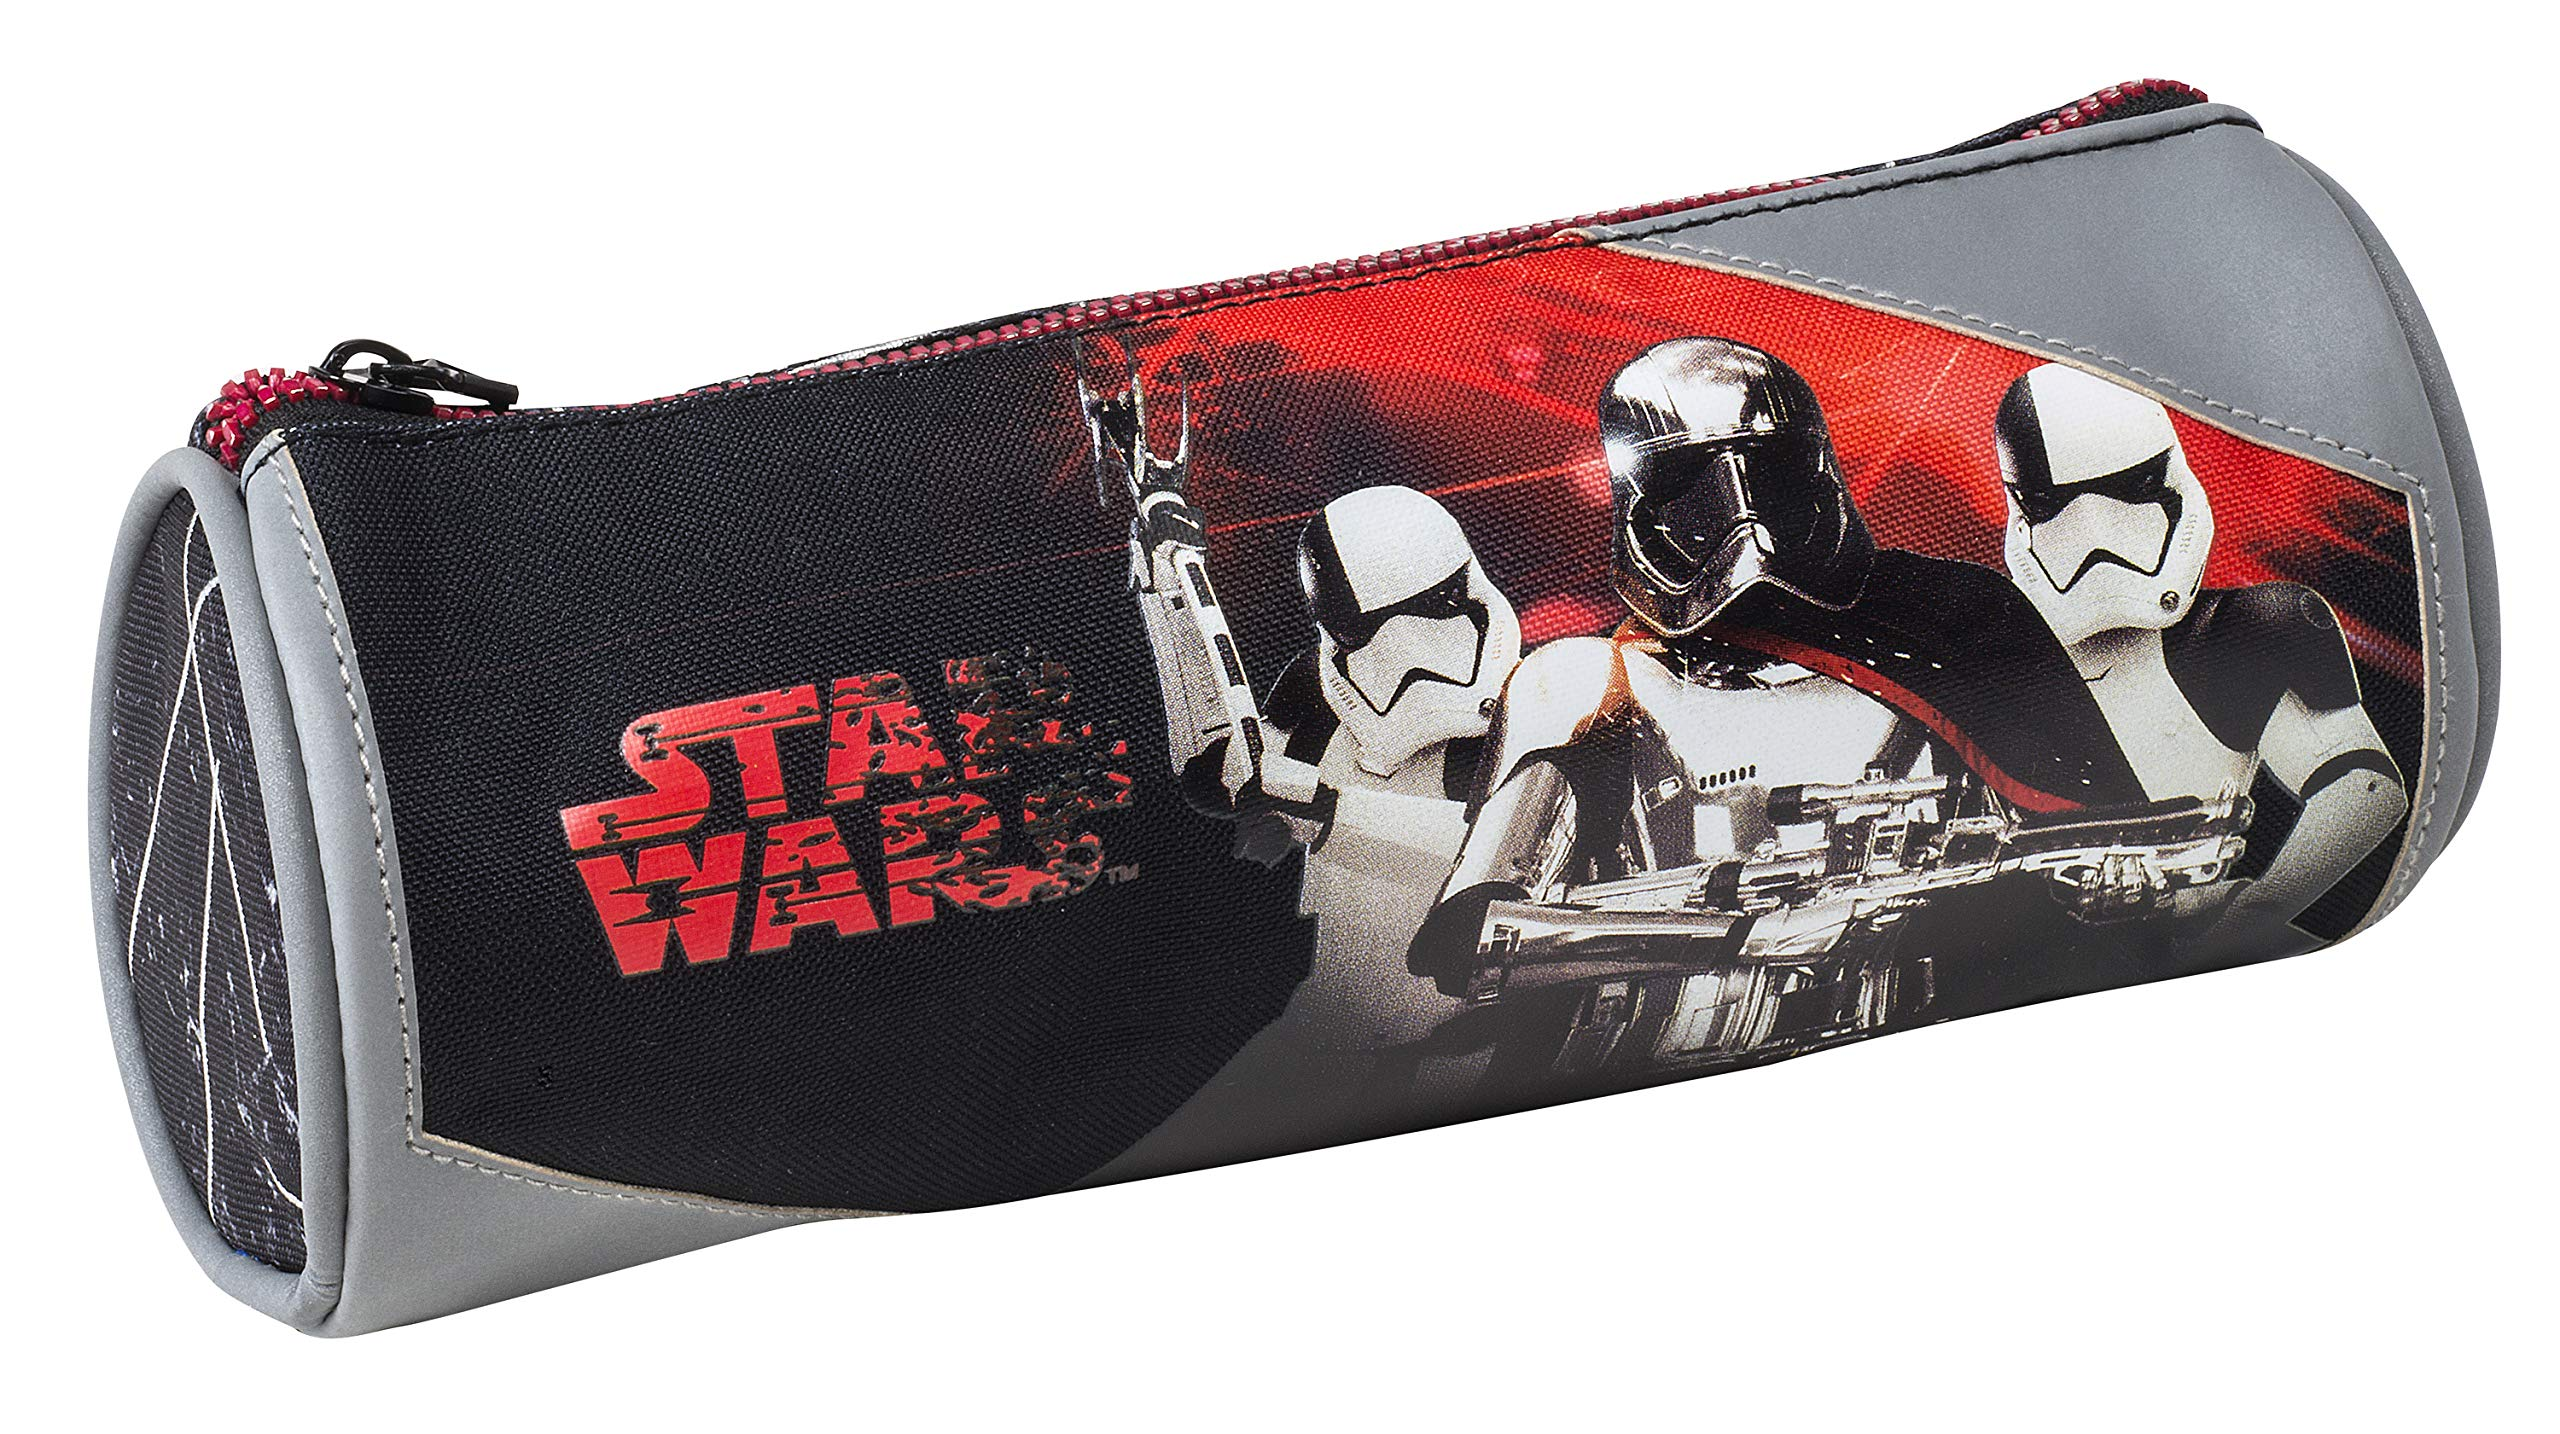 Graffiti Star Wars Estuches, 22 cm, Negro (Black)